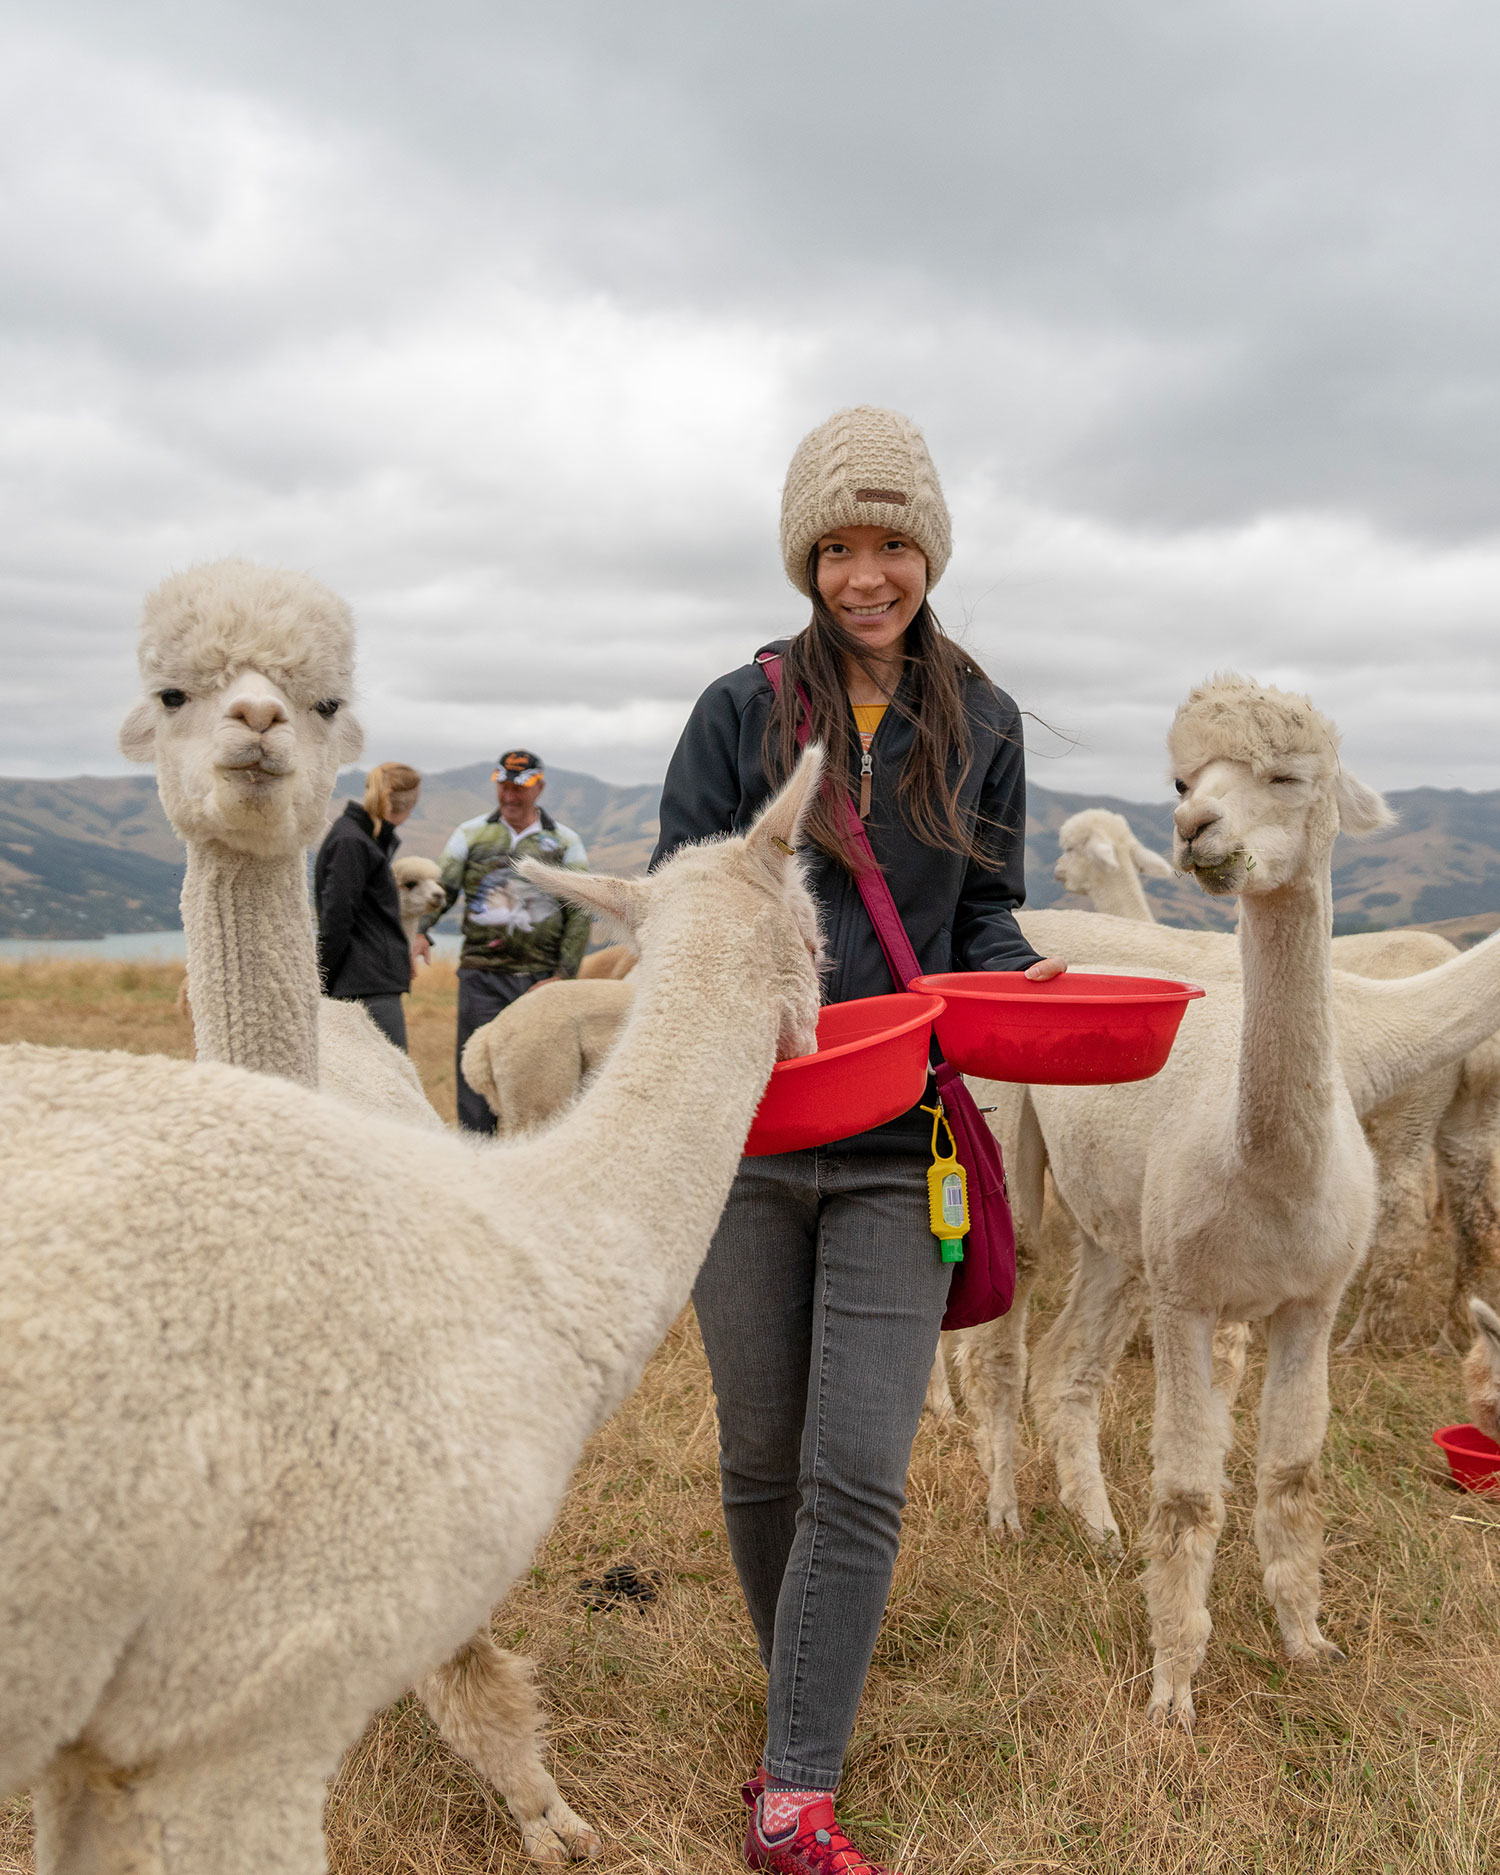 Thaneeya McArdle feeding alpacas at Shamarra Alpaca Farm in Akaroa, New Zealand